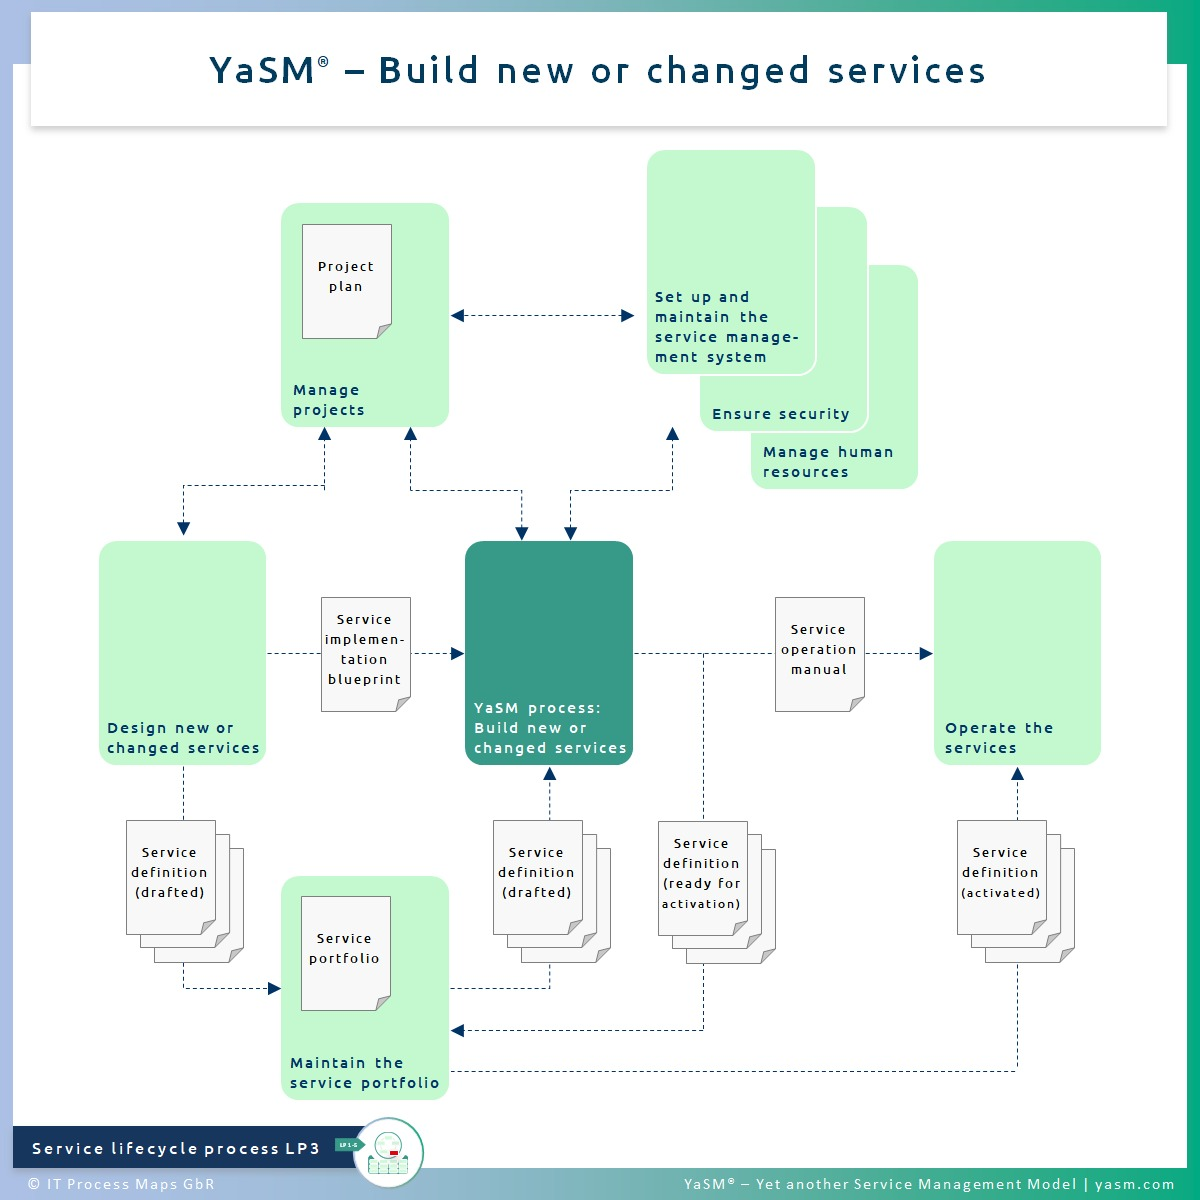 Fig. 1: Build new or changed services. - YaSM service build process LP3 (YaSM service implementation). - Related with various ITIL 4 service transition practices.